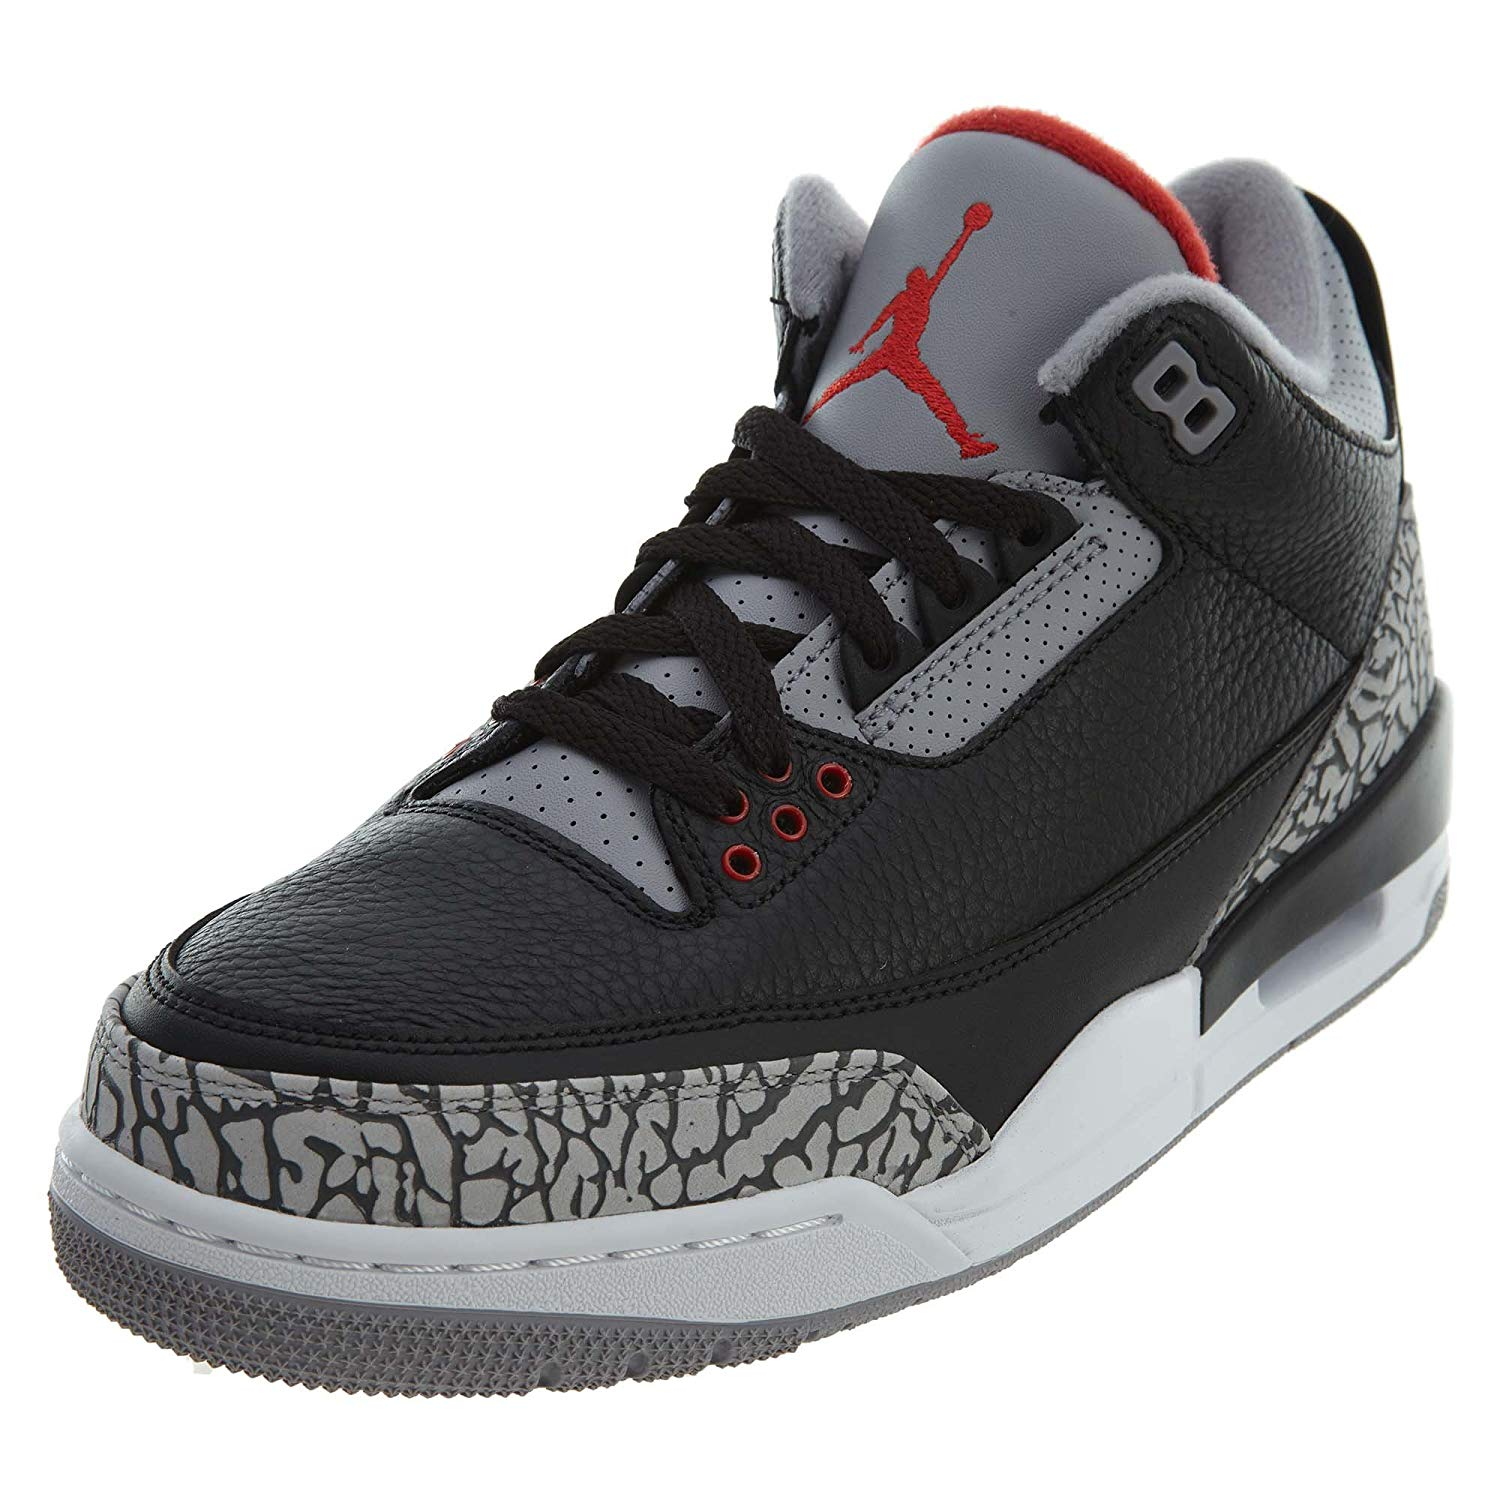 be361d3fb345d8 Get Quotations · Jordan 3 Retro Black Cement (2018) Mens